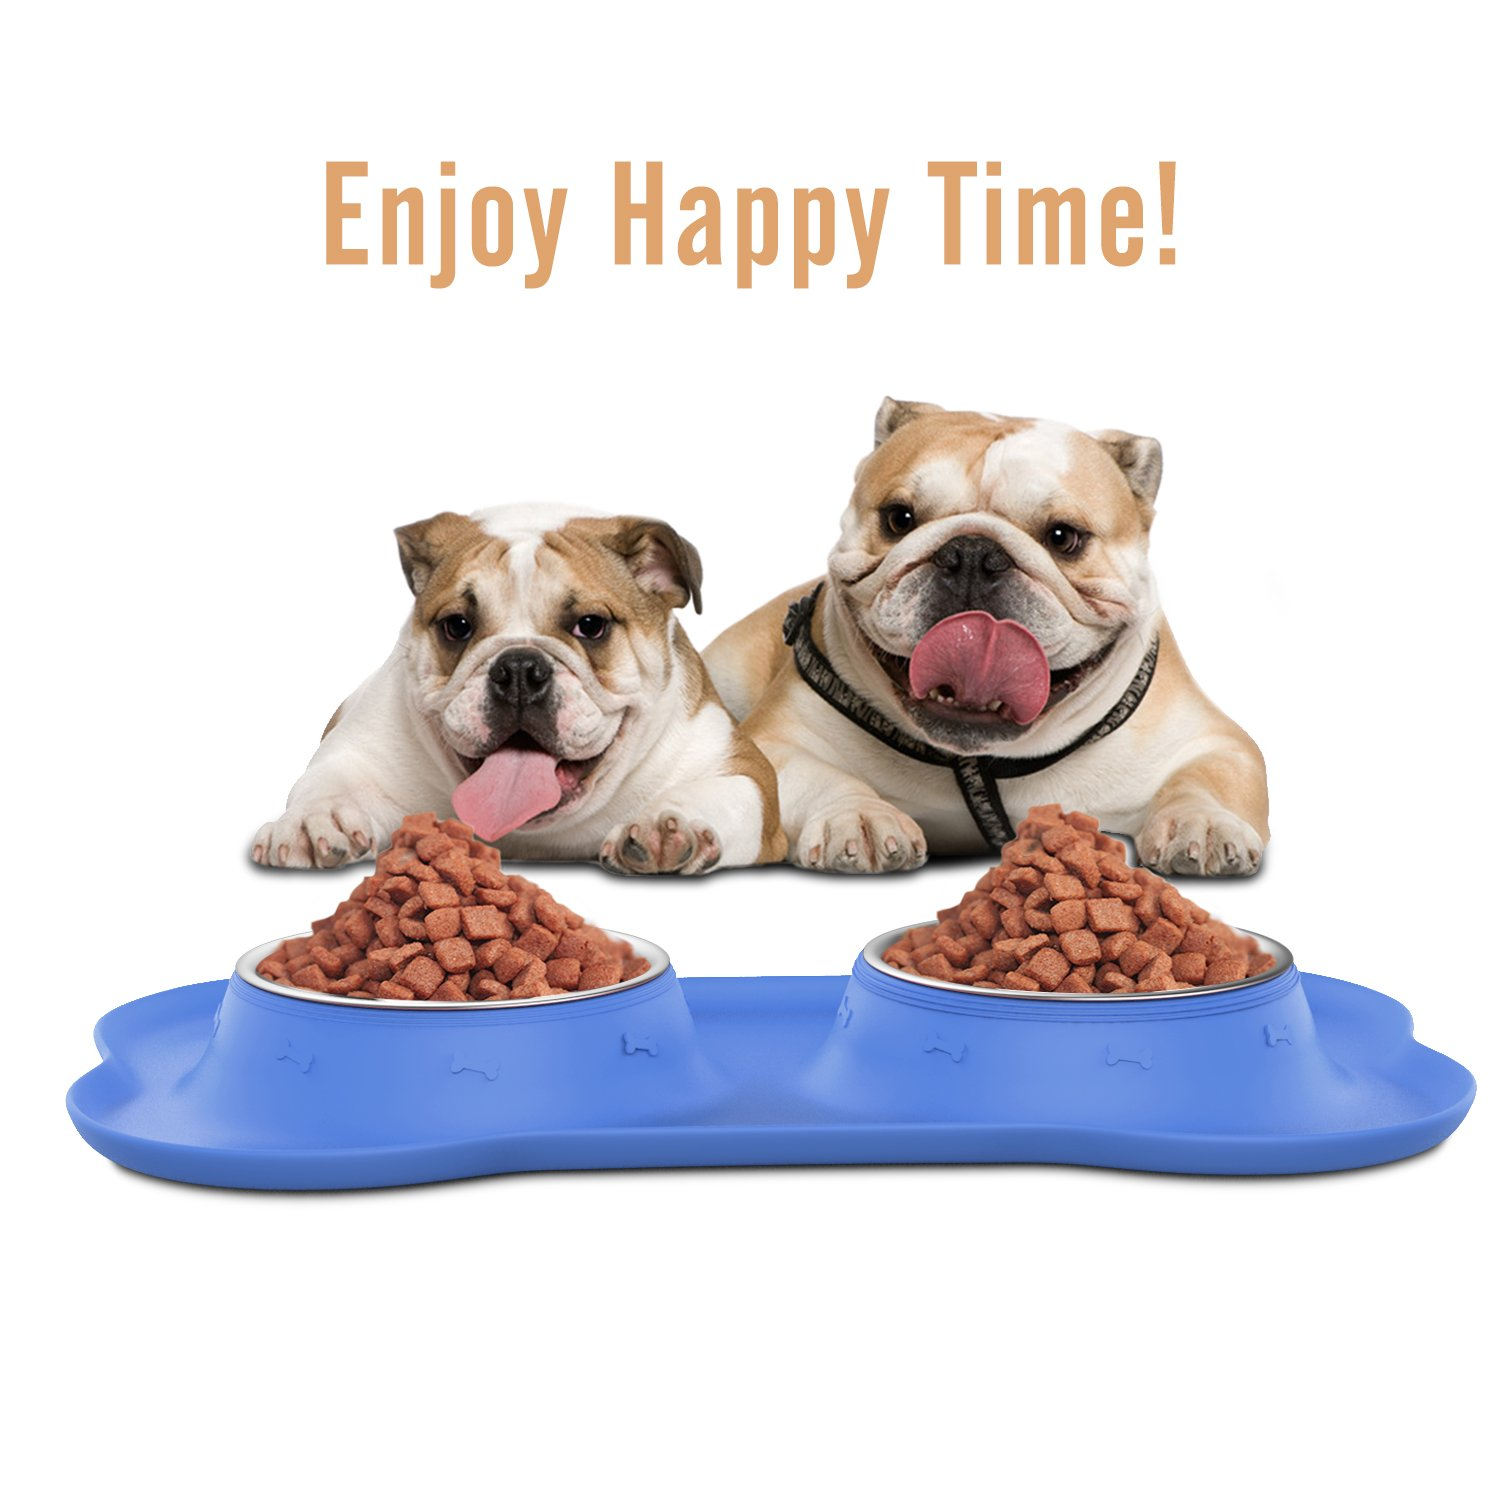 Pawaboo Pet Dog Cat Bowls, Premium Stainless Steel Pet Feeder with Food Grade Bone Shaped Rubber Base, 4.33 Inch Diameter Bowls for Pet Dog Cat Food or Water, Set of 2, Small Size, BLUE by PAWABOO (Image #6)